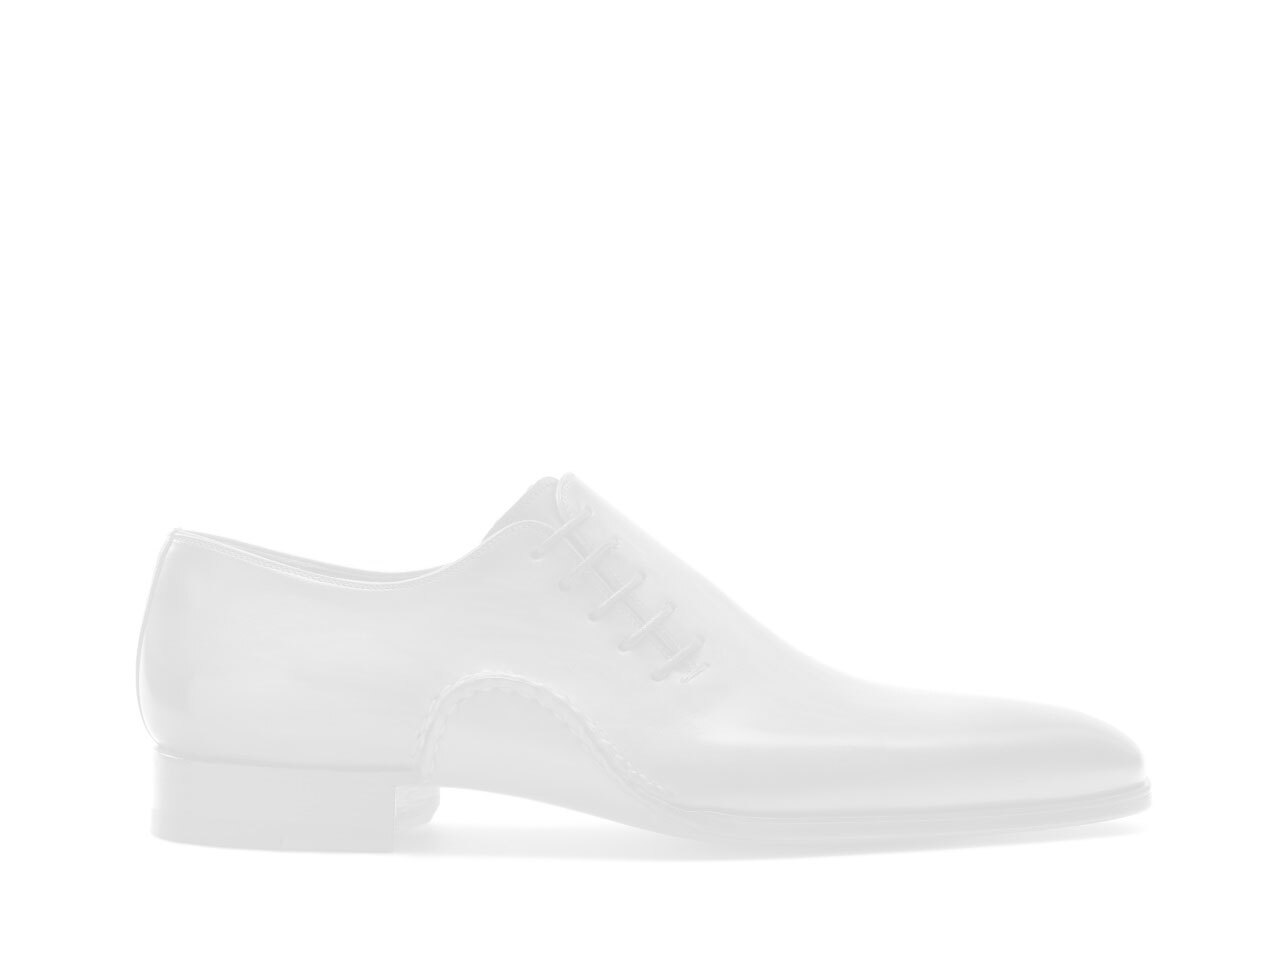 Side view of the Magnanni Echo Lo II Black Men's Sneakers